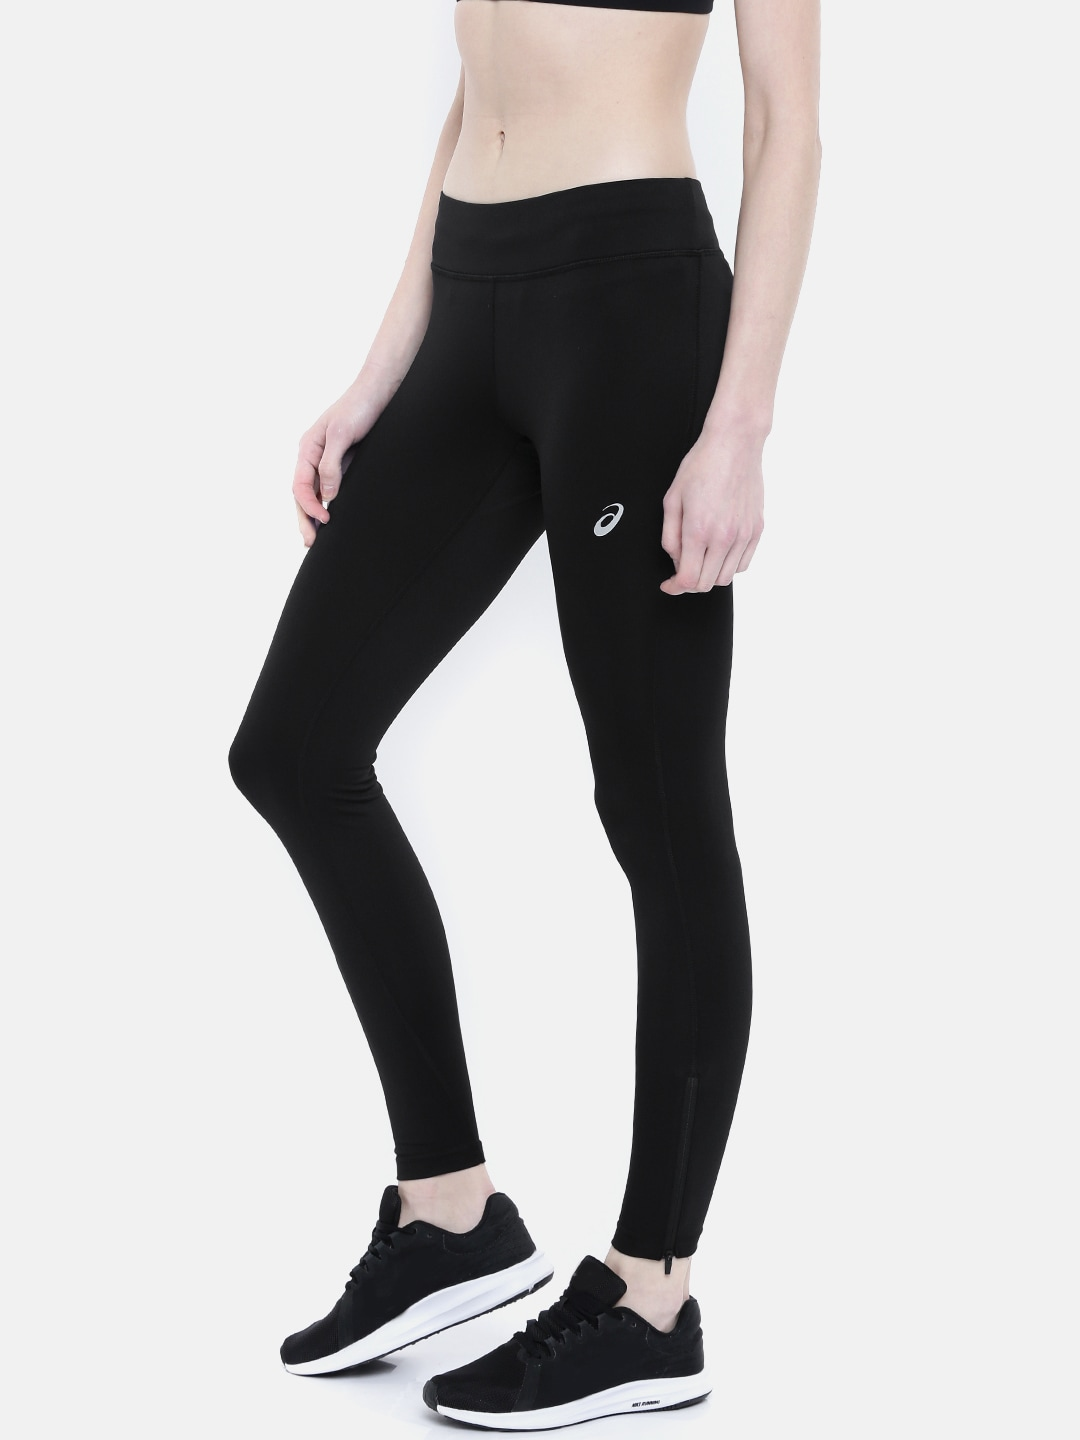 3d6b46c6d002 Tights Asics - Buy Tights Asics online in India